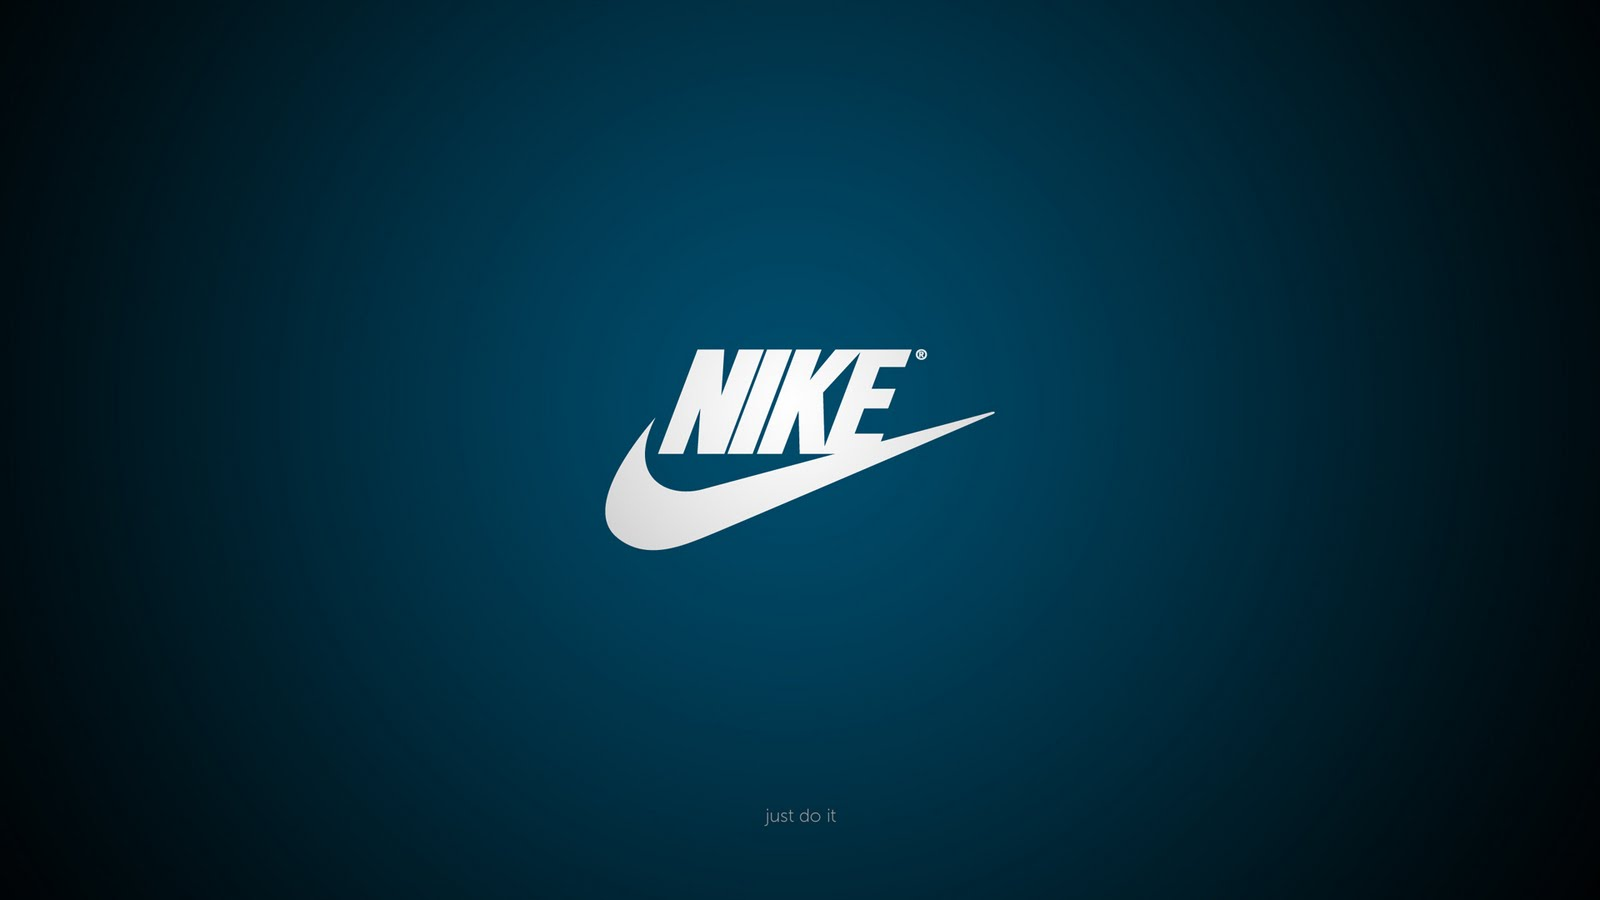 Wallpaper Fever Air Jordan Logo Wallpapers Nike 1600x900